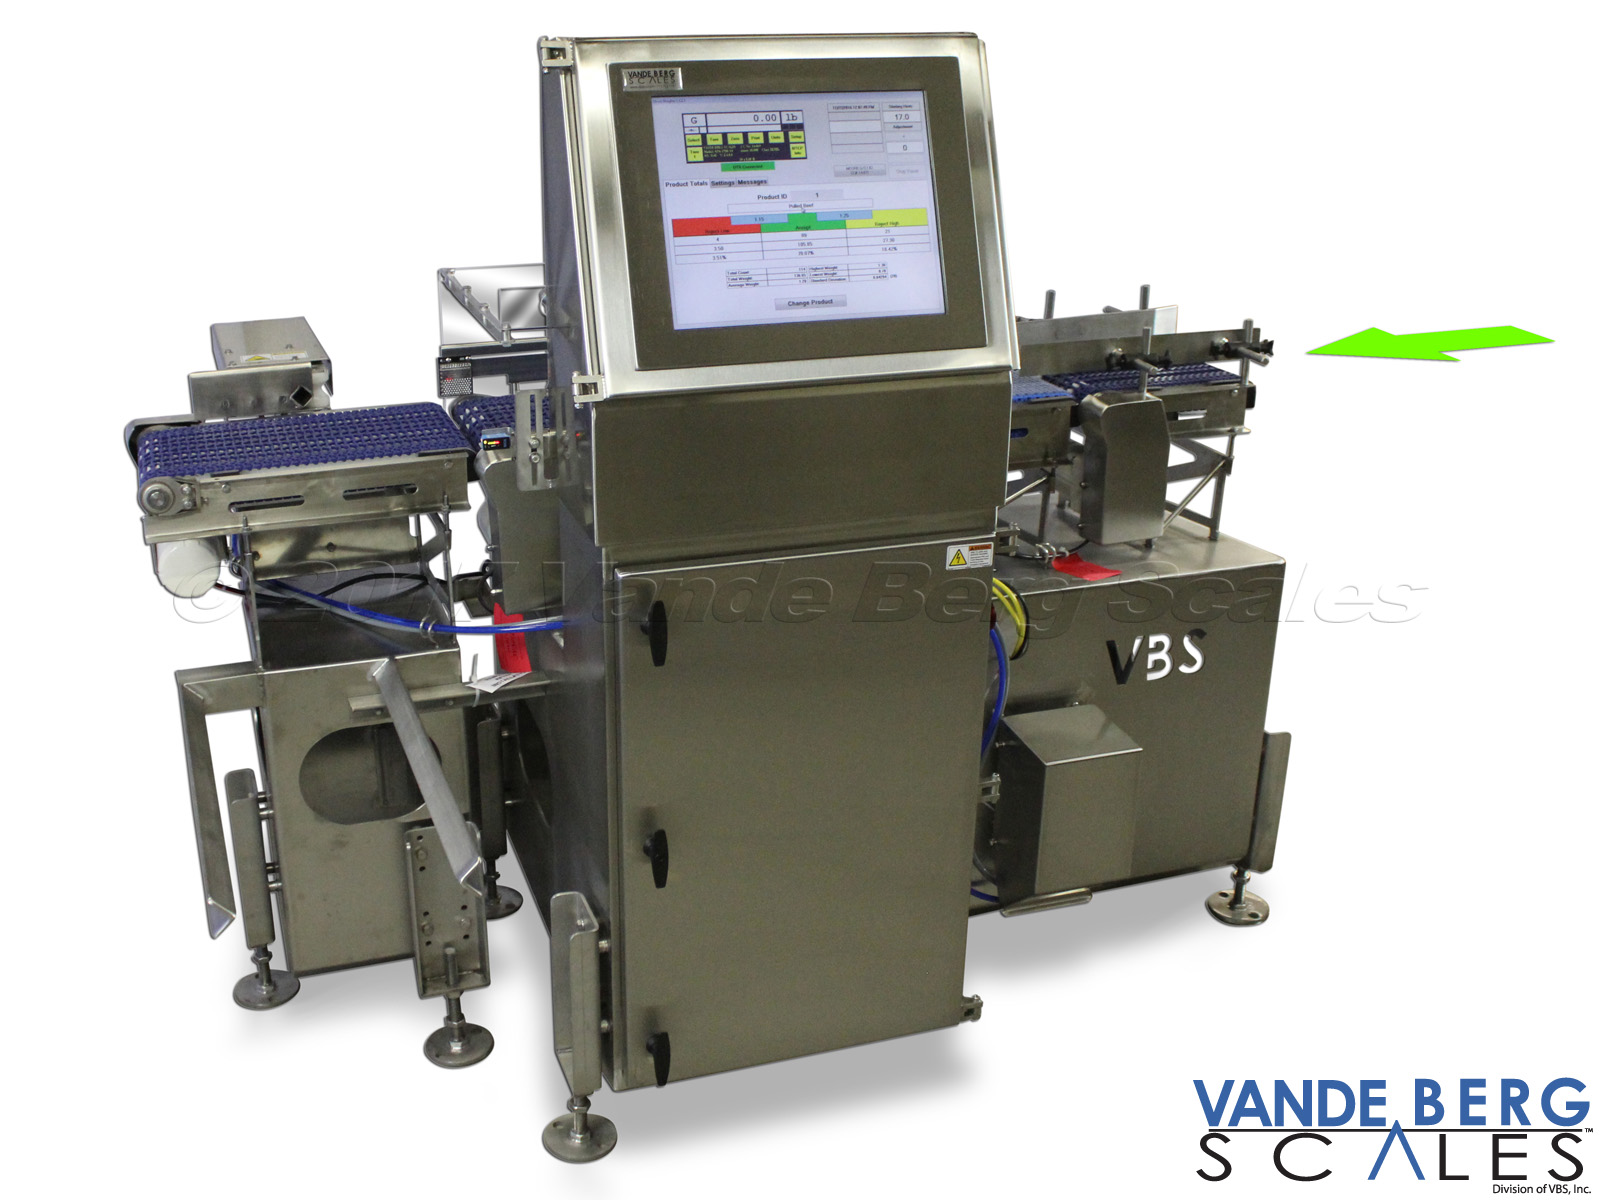 Heavy Duty 304 Stainless Steel Washdown Food Grade Dynamic Checkweigher with 17-in Touchscreen HMI.